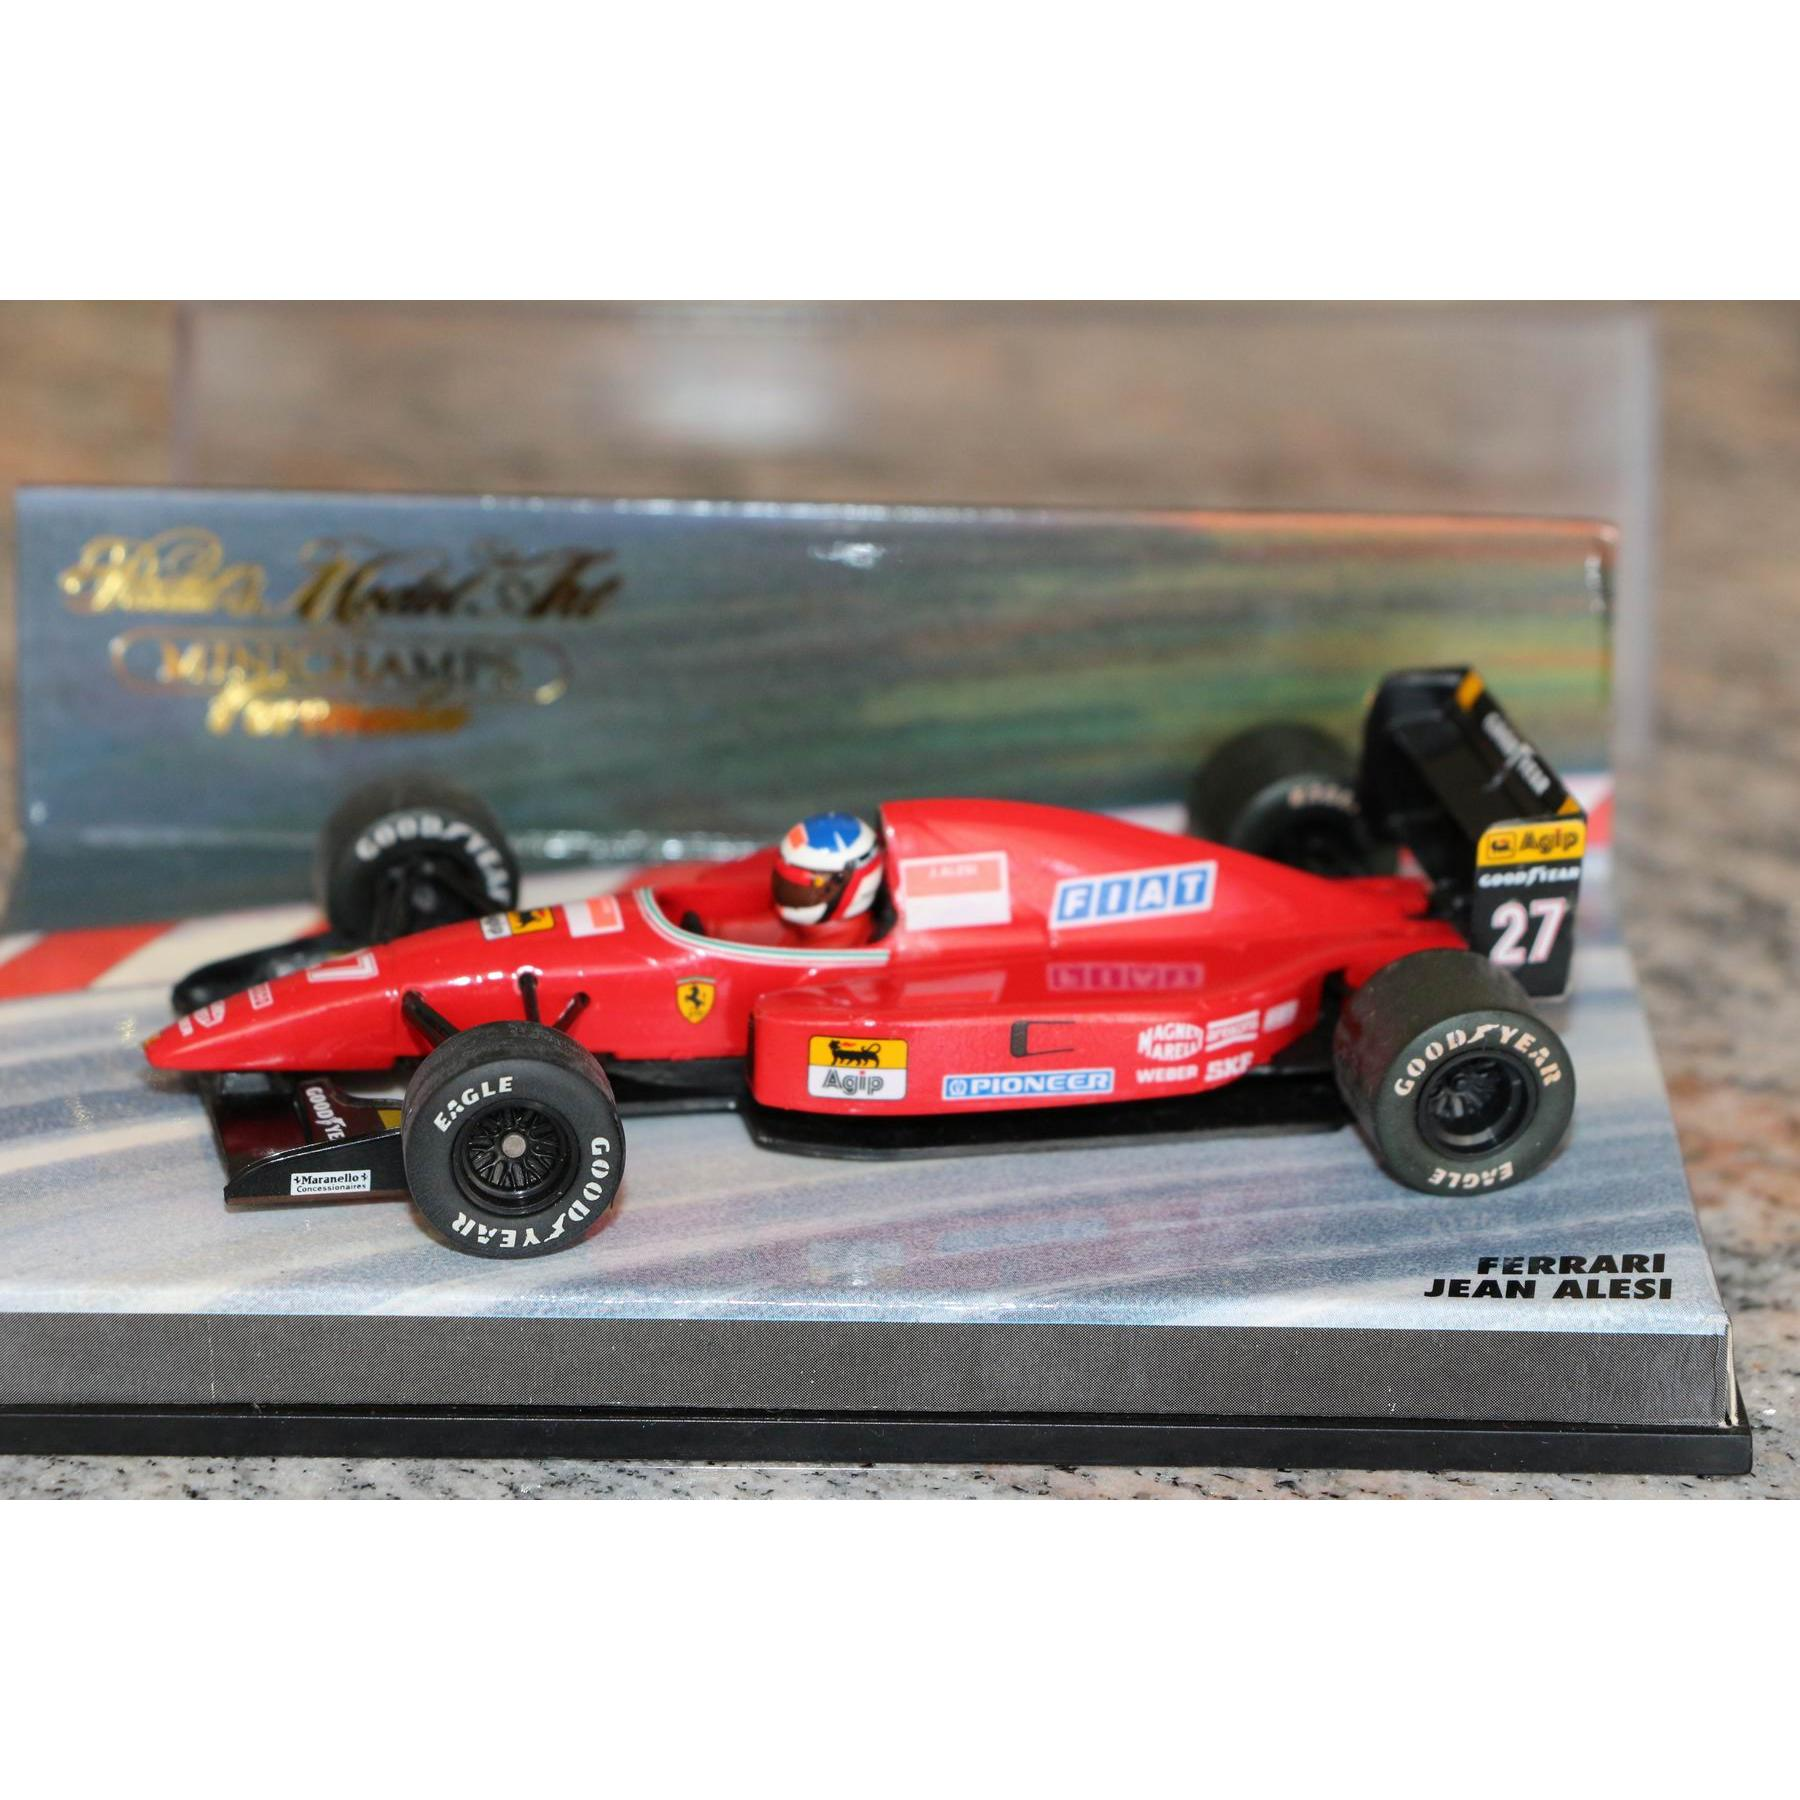 formel 1 ferrari 644 jean alesi 1 43 formel 1 steff 39 s. Black Bedroom Furniture Sets. Home Design Ideas